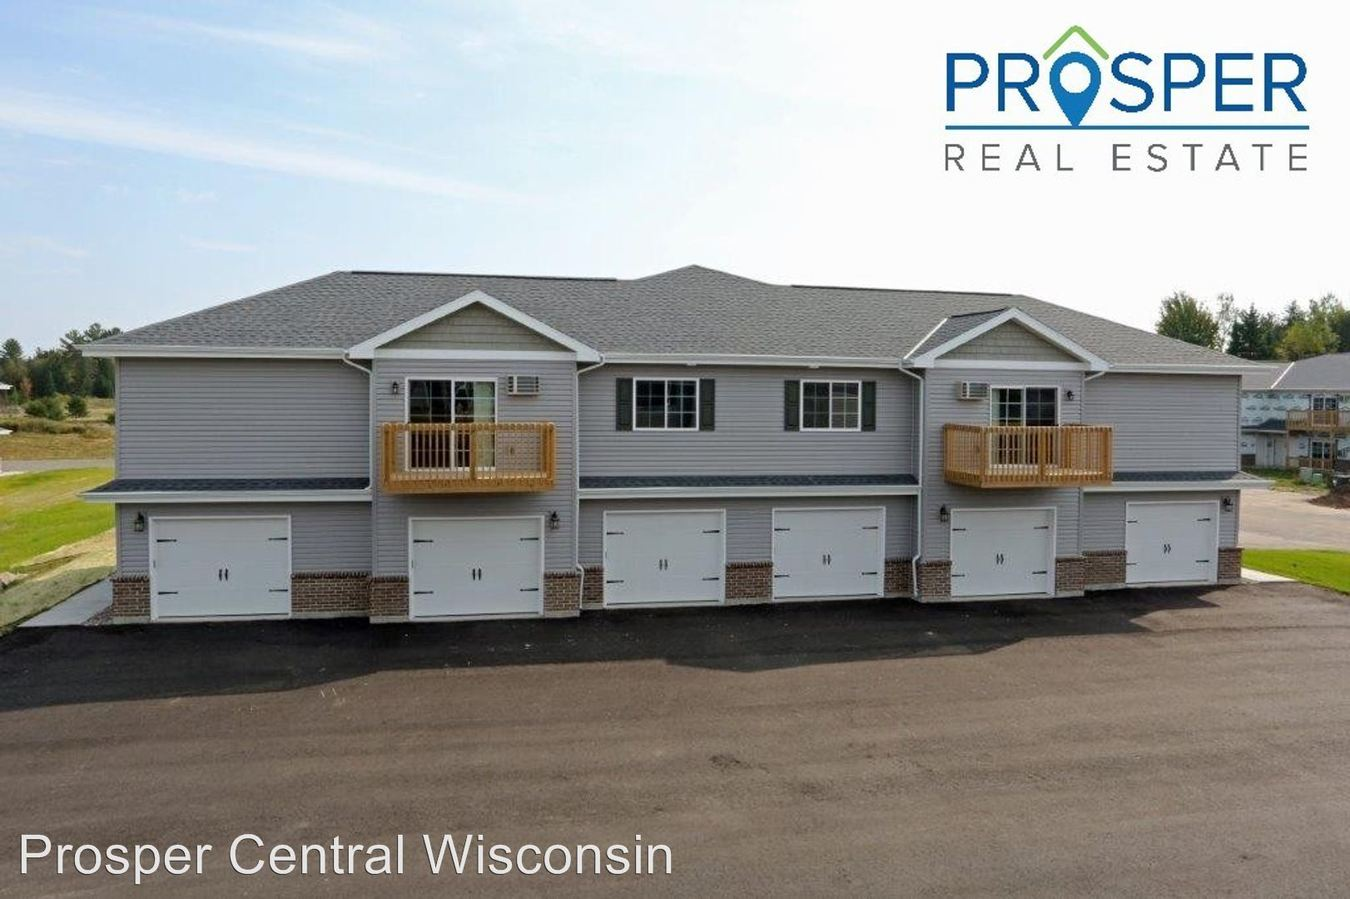 2 Bedrooms 2 Bathrooms Apartment for rent at 3551 Driscoll Rd in Rhinelander, WI